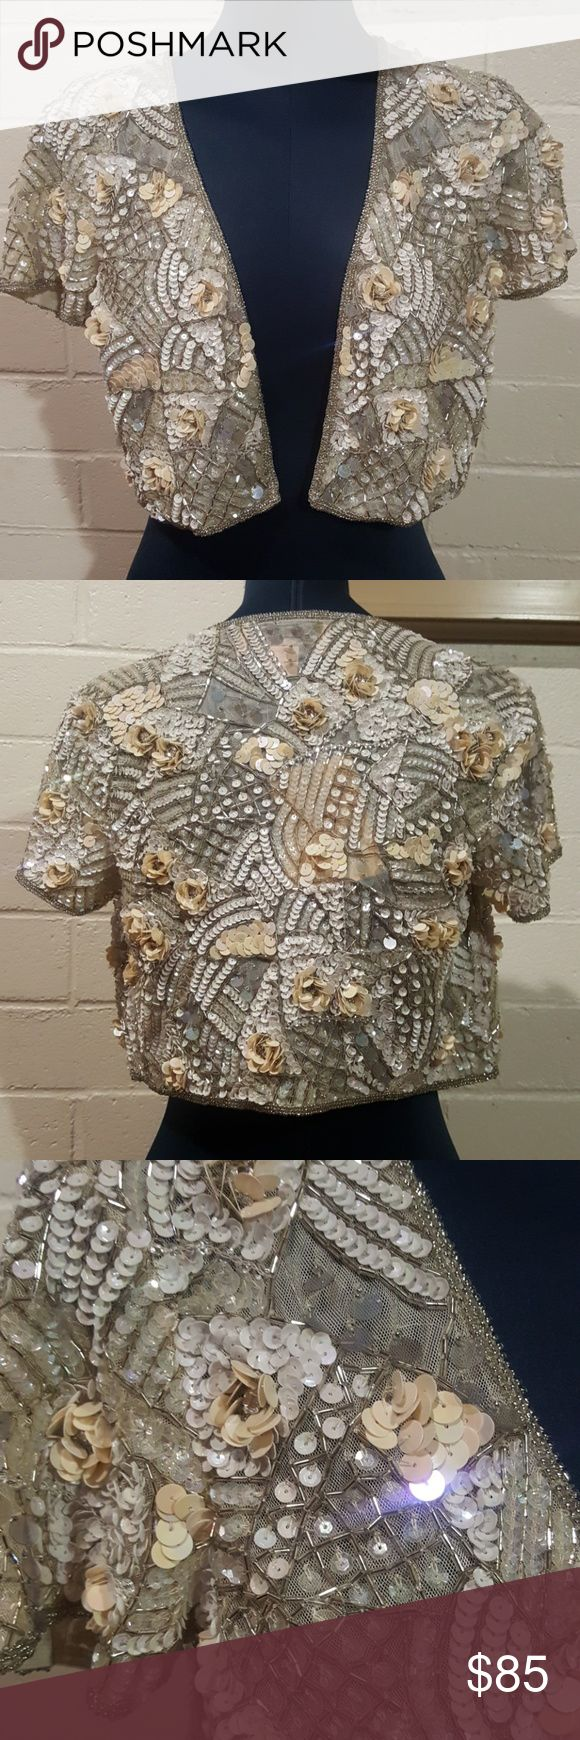 🔥HOT NWT! Miss Selfridge Antonia Bolero Brand new with tags! Show off your opulent style with this lovely bolero! Whether it's worn over a simple dress or black trousers, this is a statement piece that is sure to turn heads!  *Last few pics aren't of the item and just show suggested styling. Miss Selfridge Tops